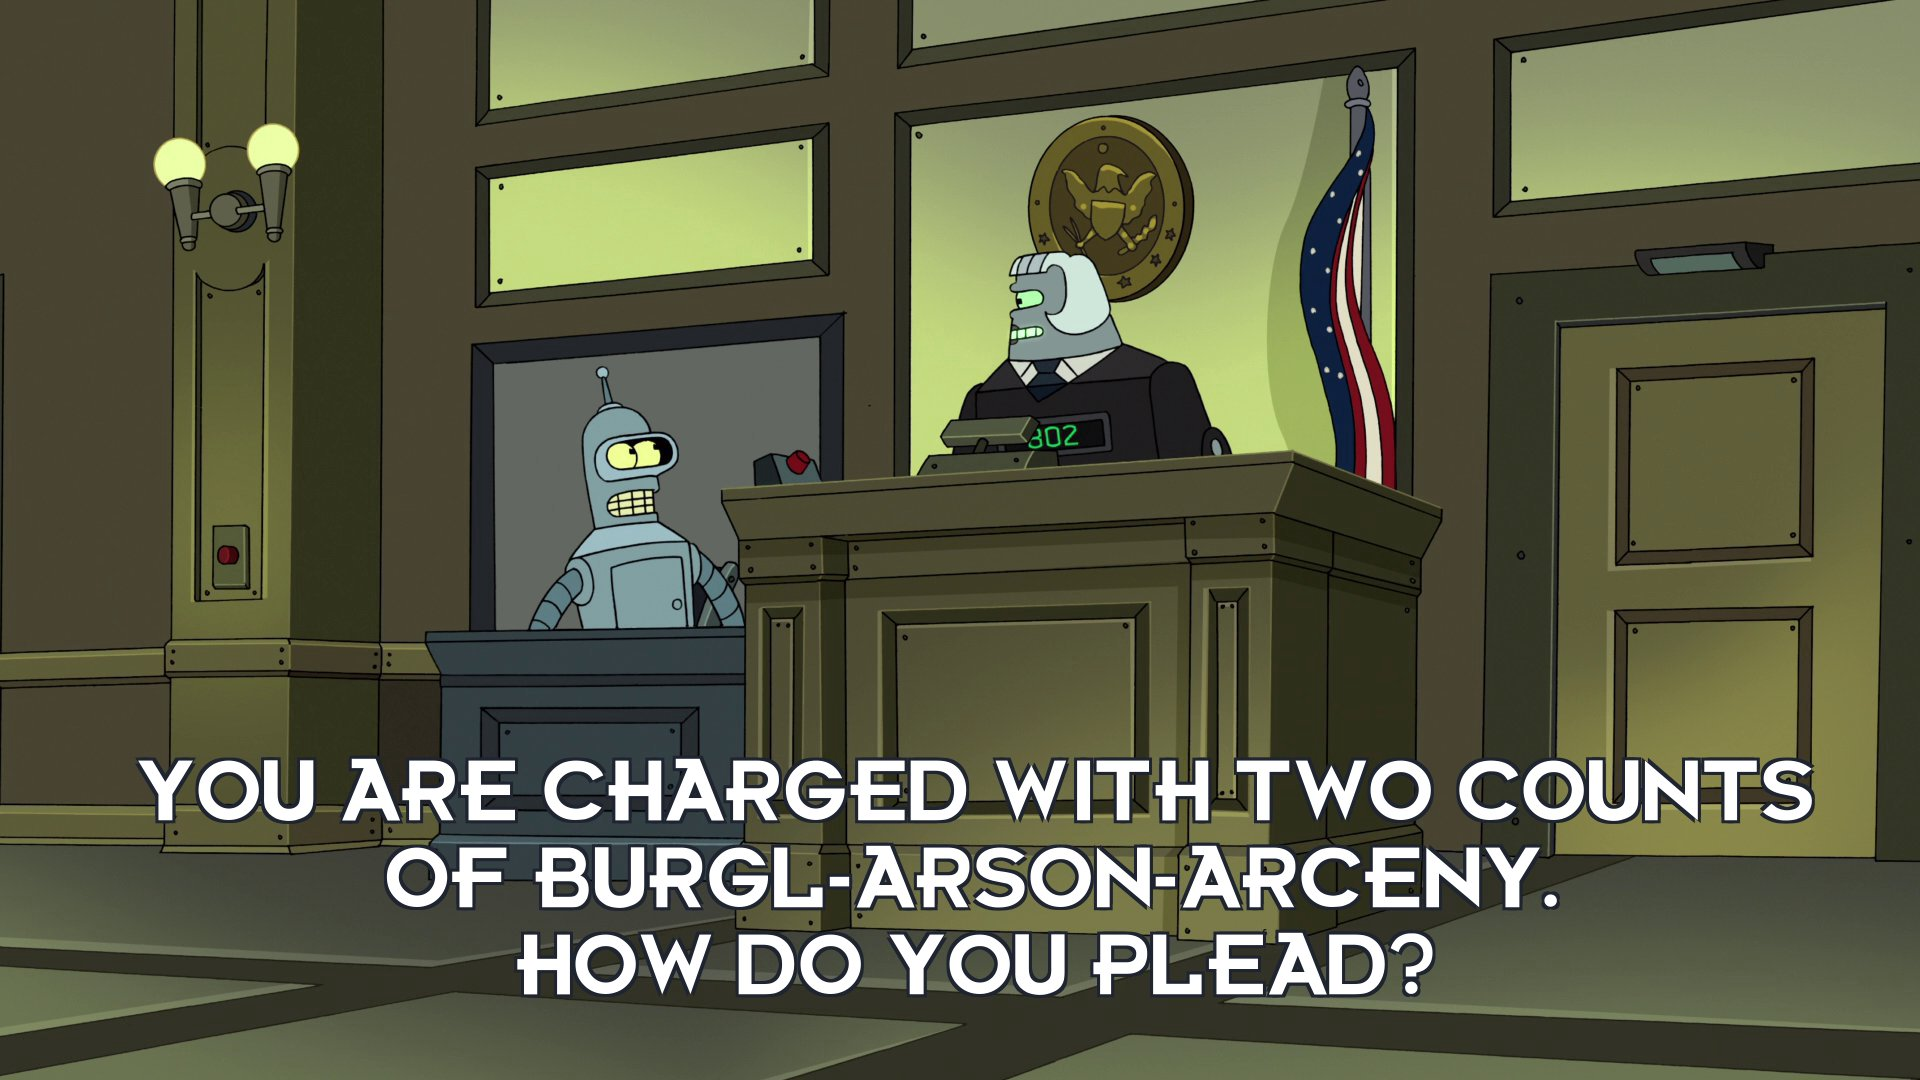 Judge 802: You are charged with two counts of burgl-arson-arceny. How do you plead?